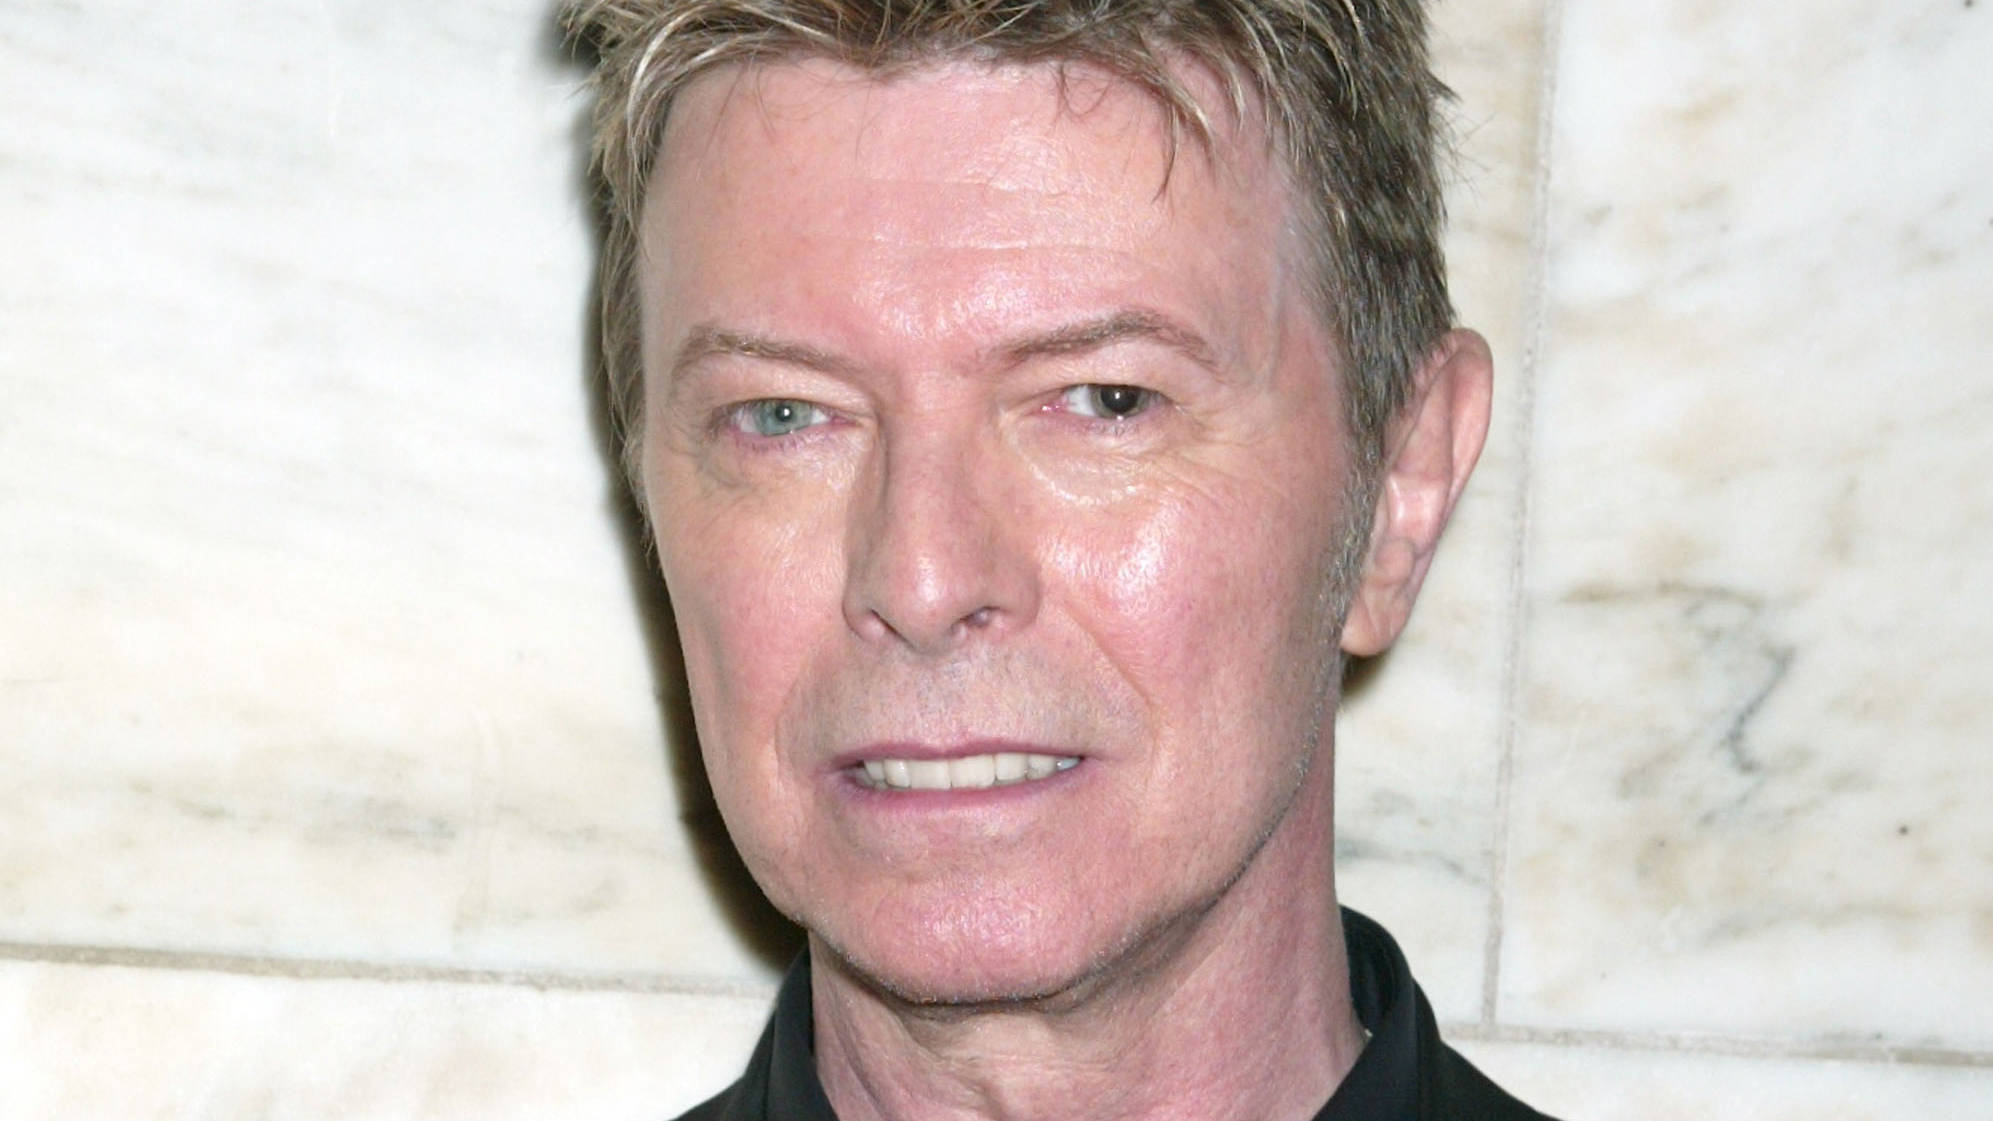 David Bowie S 19 Year Old Daughter Lexi Sells Her Artwork Online Radio X